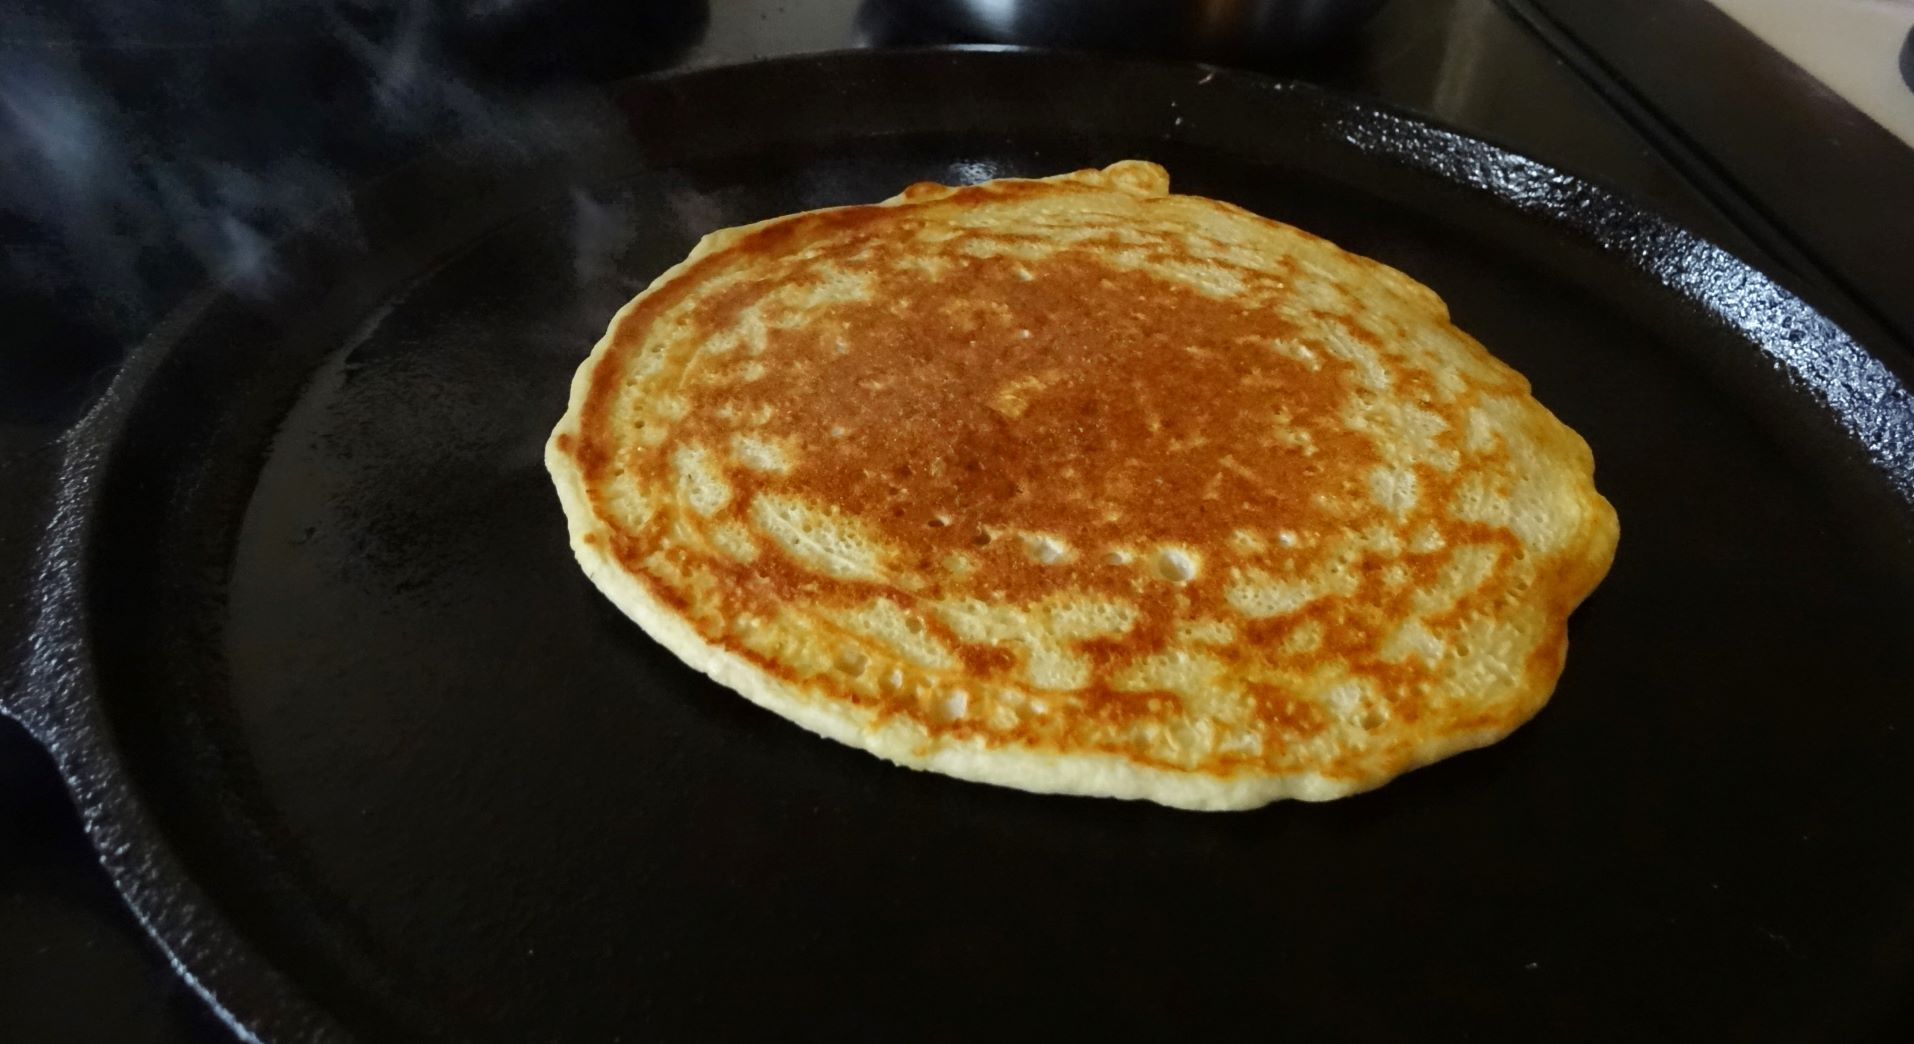 Golden brown pancake in a cast iron skillet